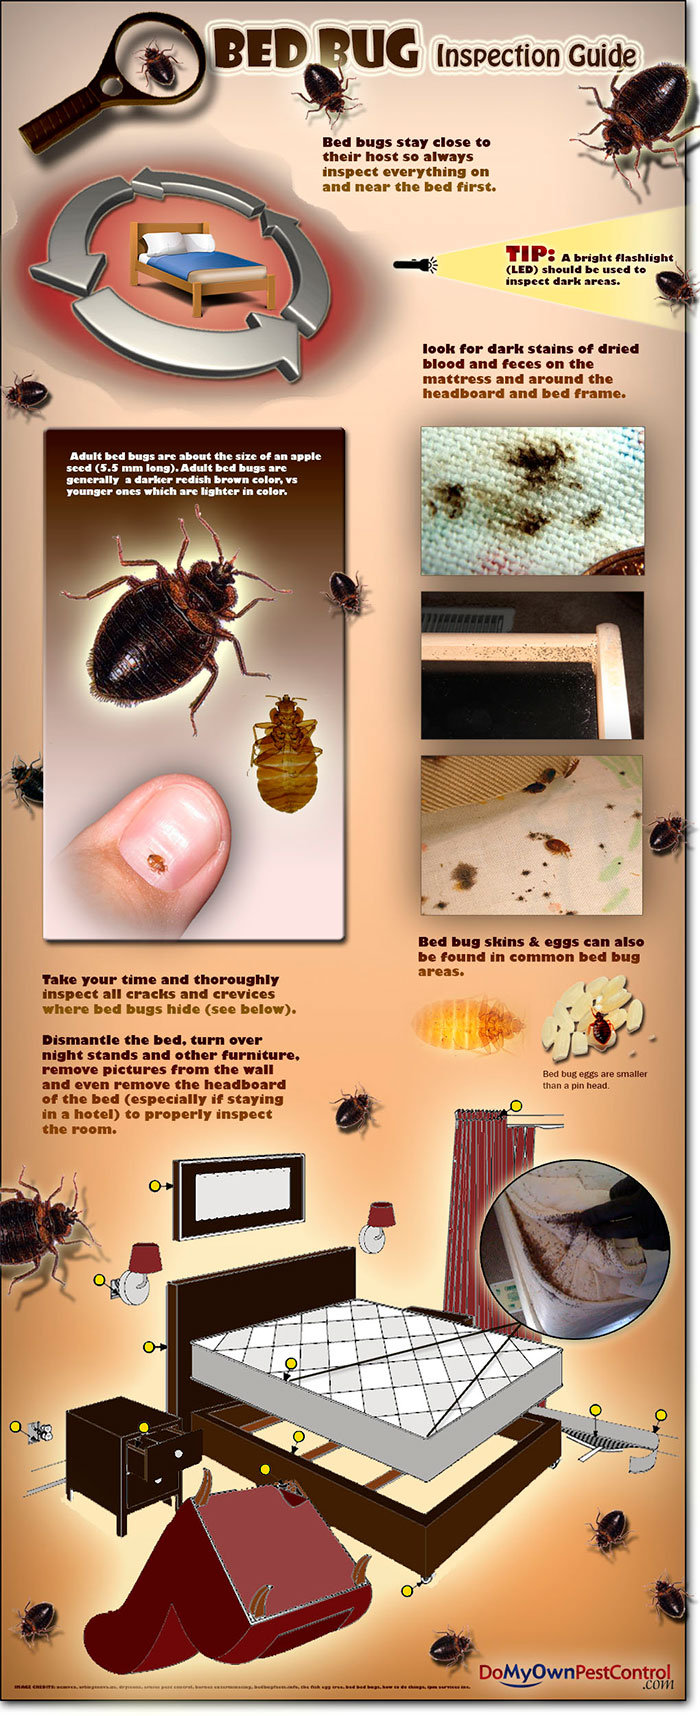 Bed bug inspectation guide